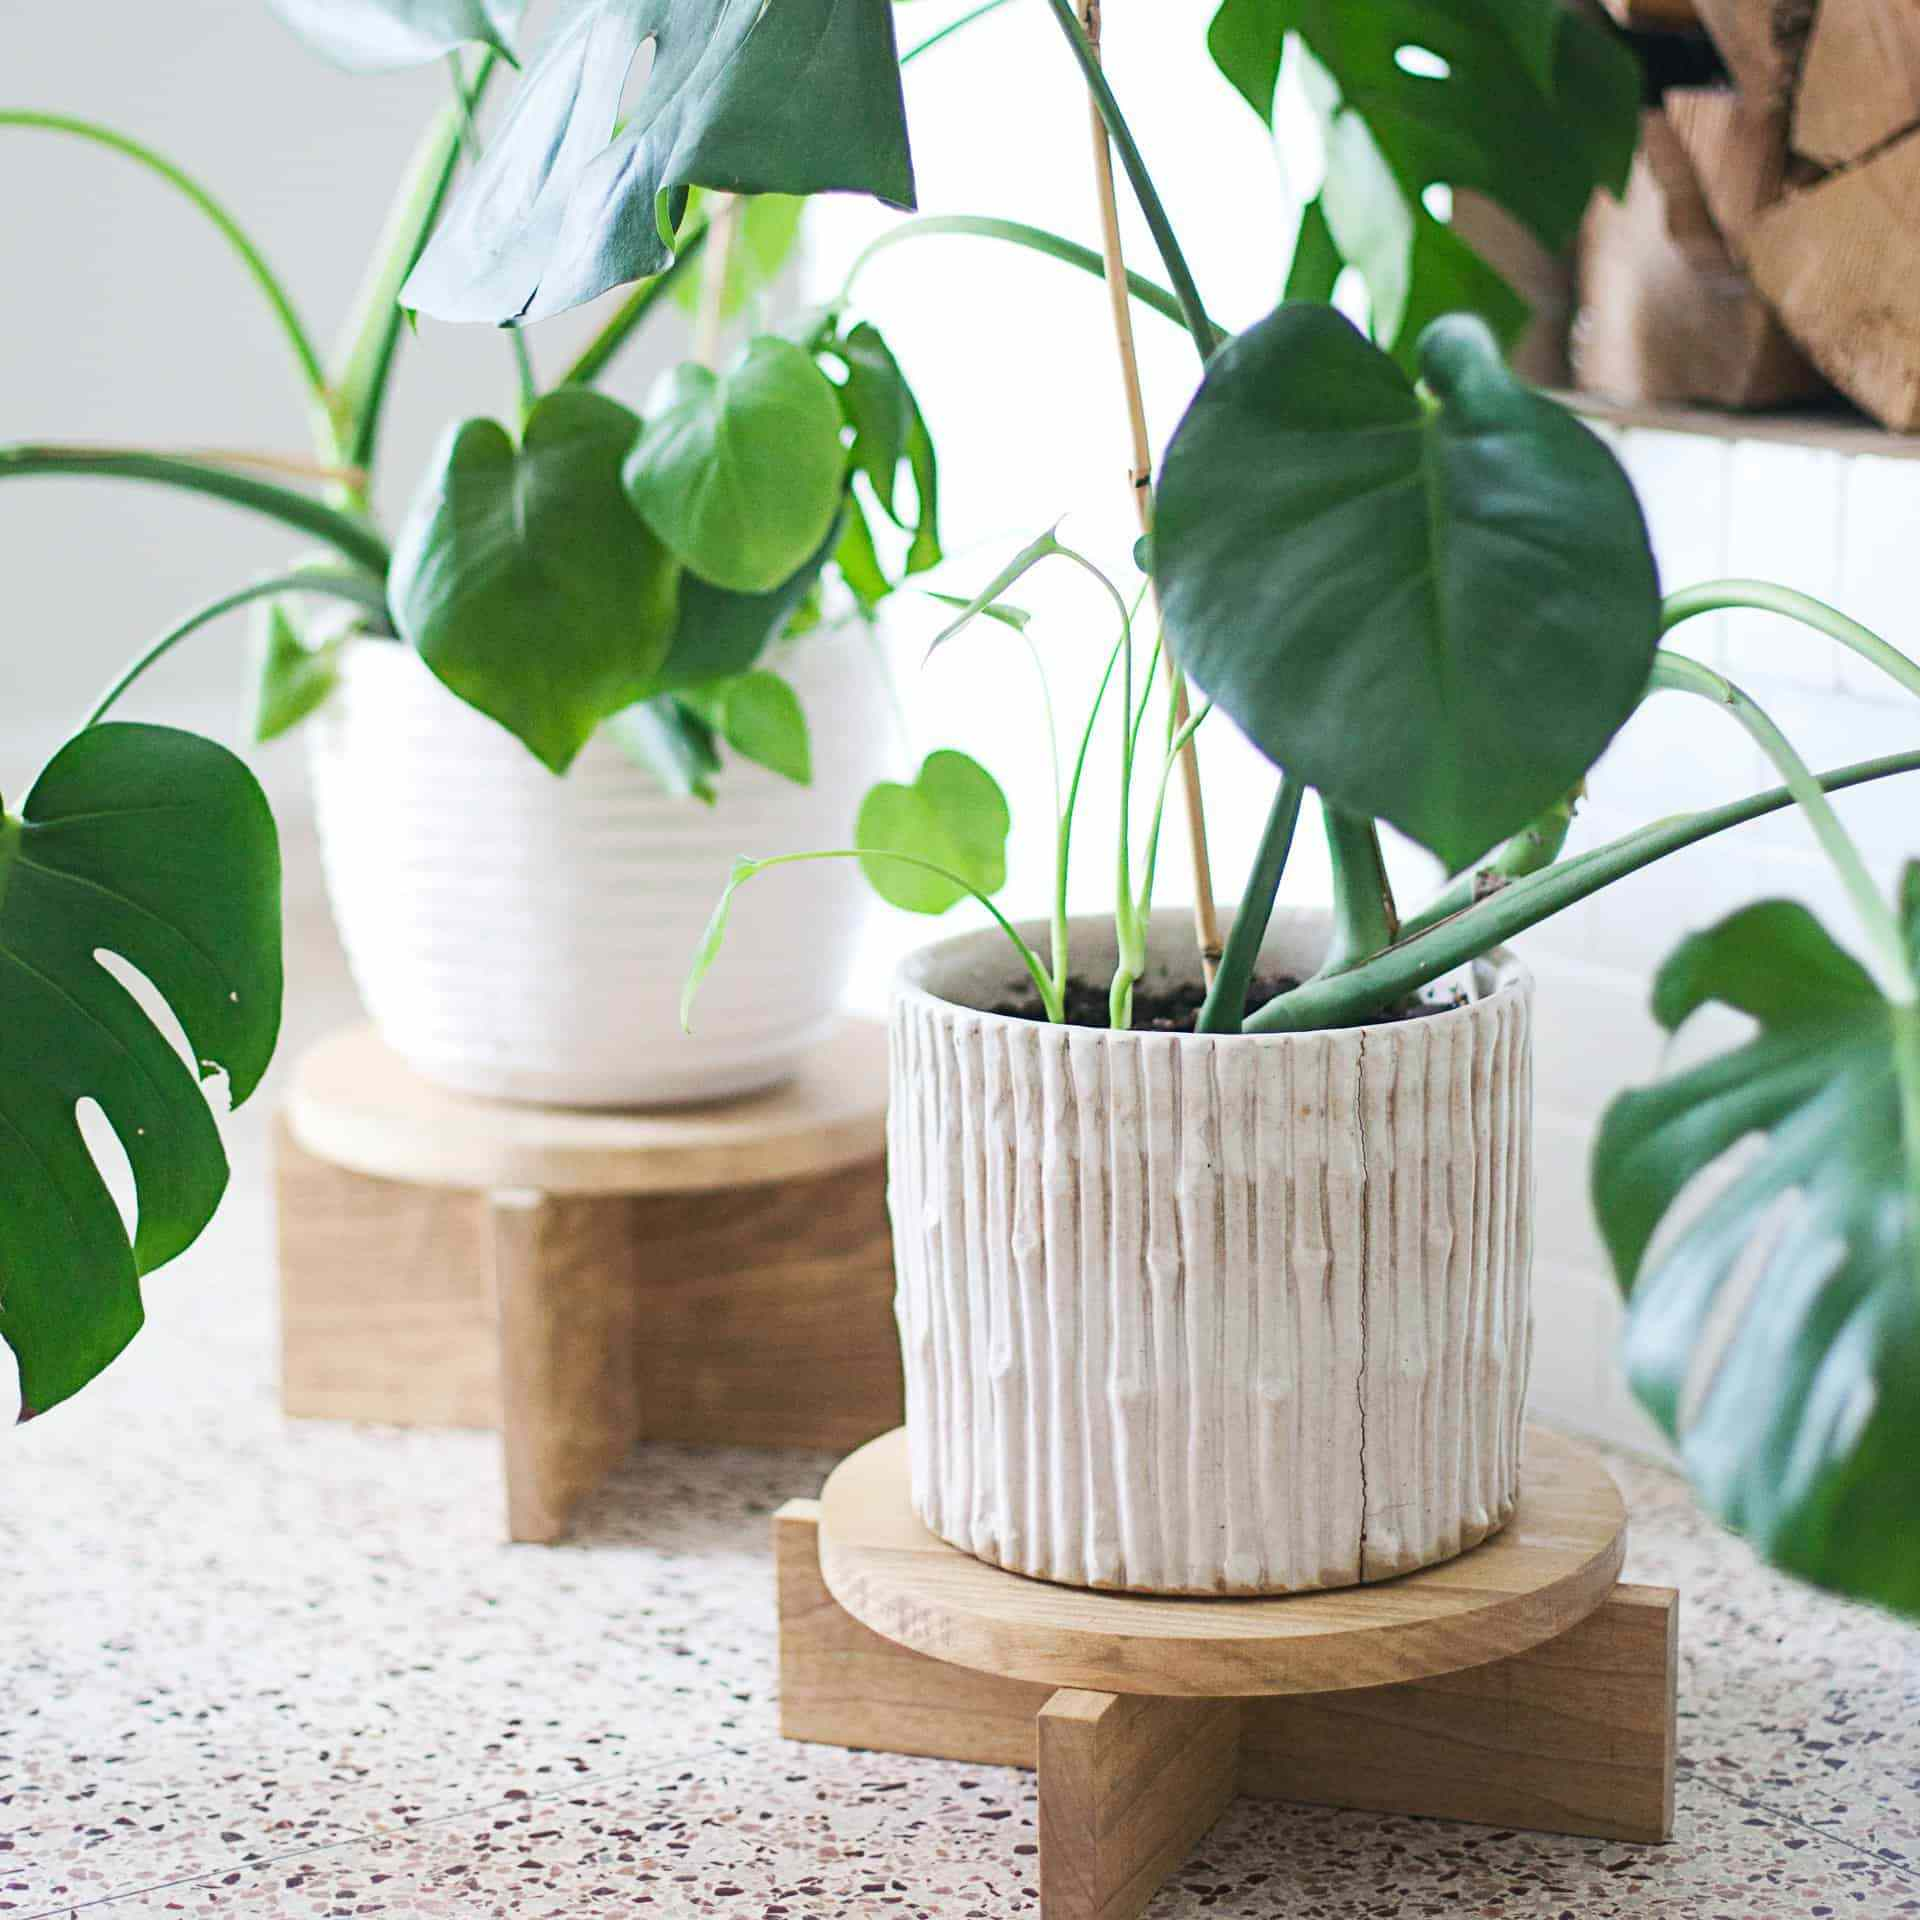 Two wooden plant stands on a counter